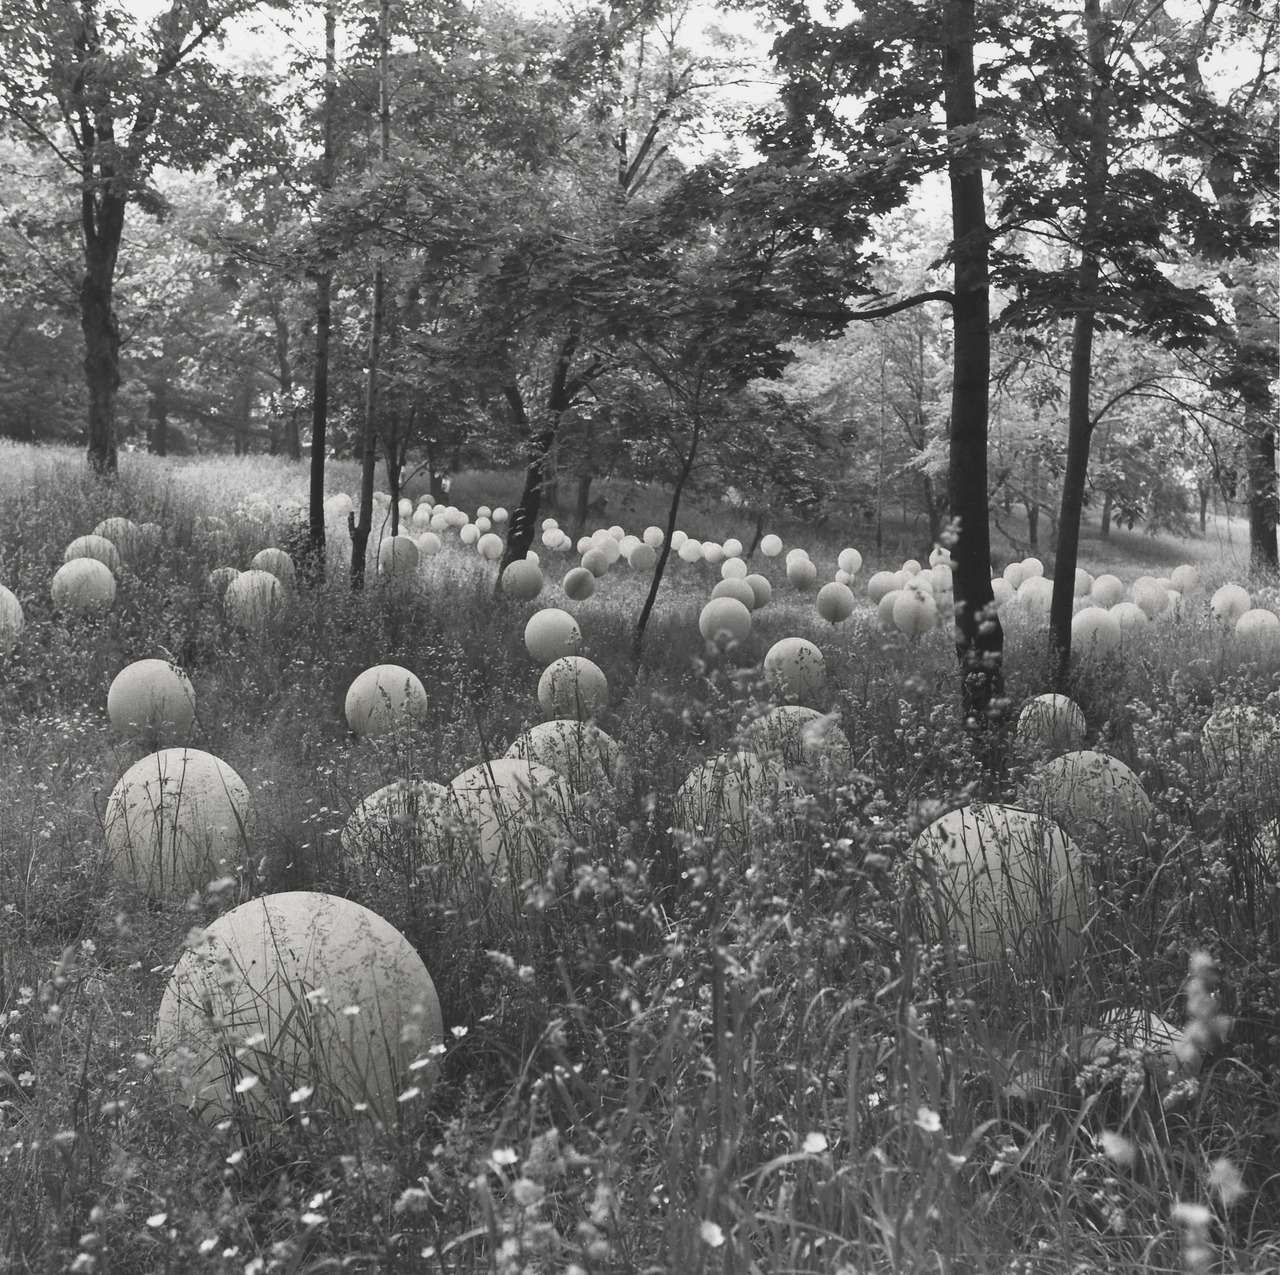 Linda Brooks - Fantasy Volumes and Landscapes, after Form III, 1976. Albright-Knox Art Gallery - © Linda Brooks.